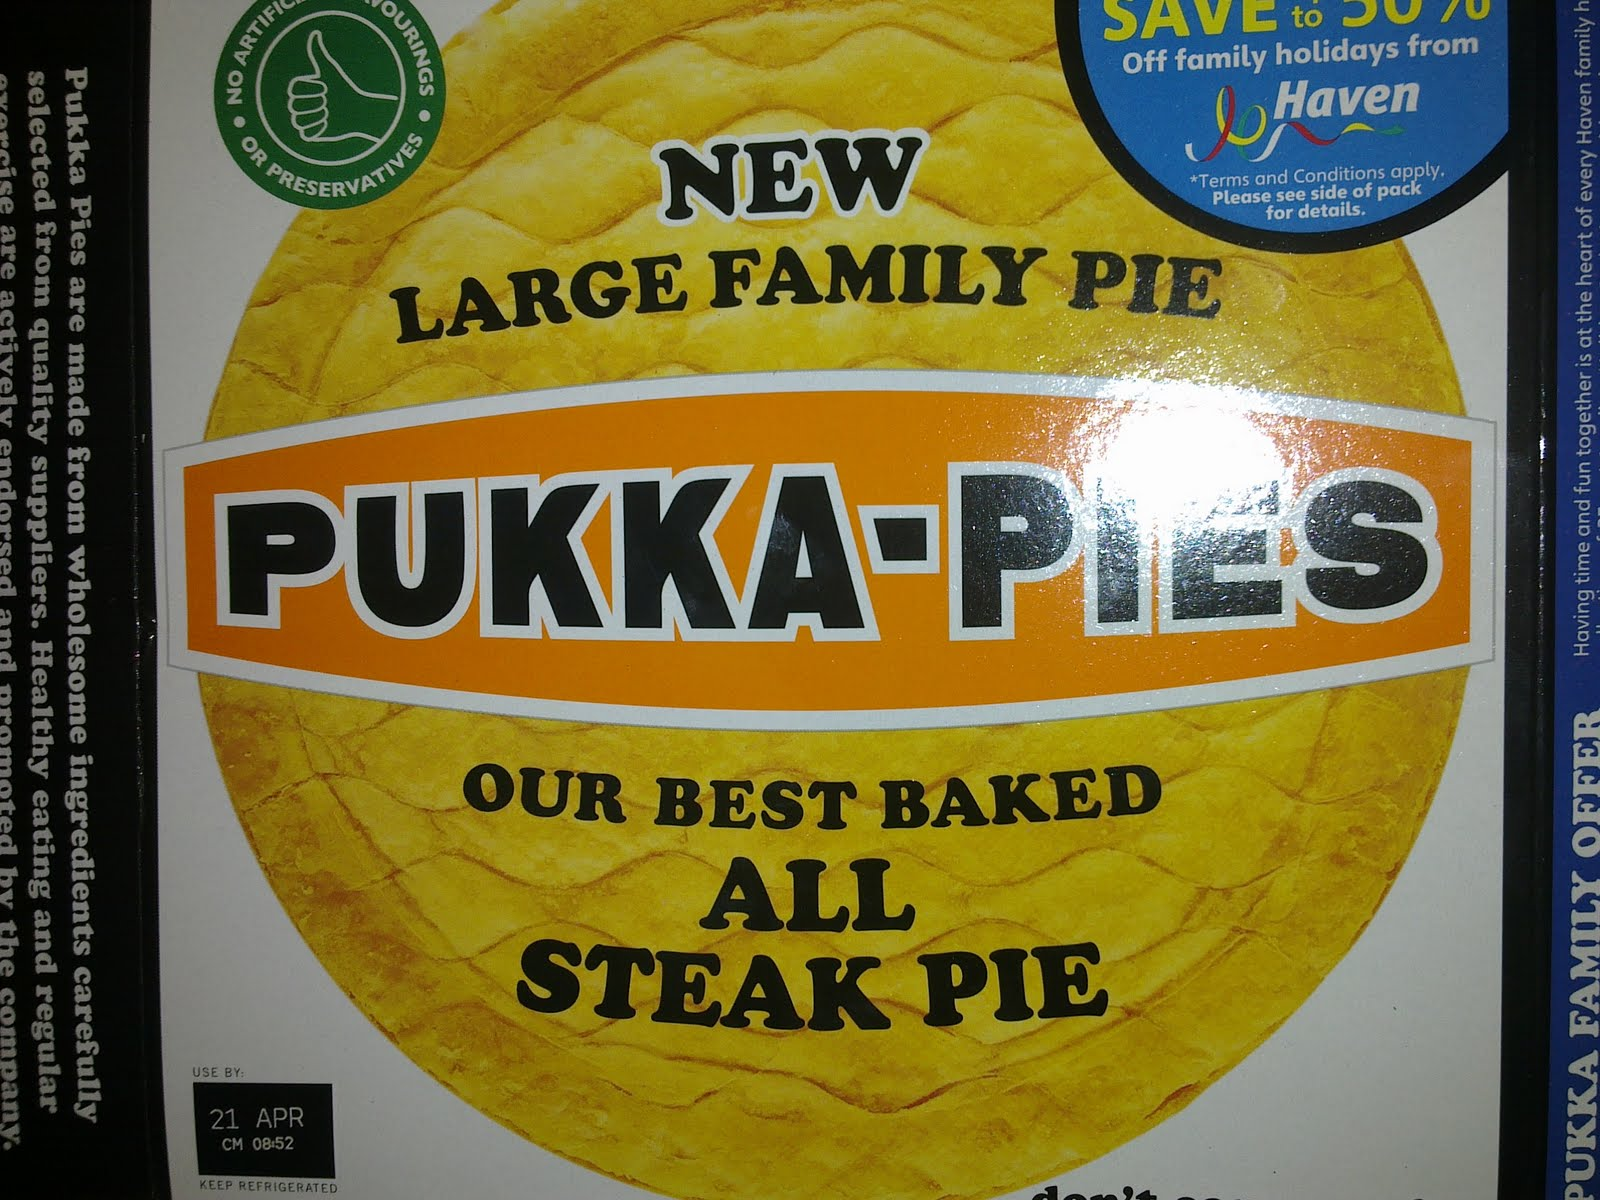 Pierate - Pie Reviews: We are family, yeah yeah yeah yeah ...